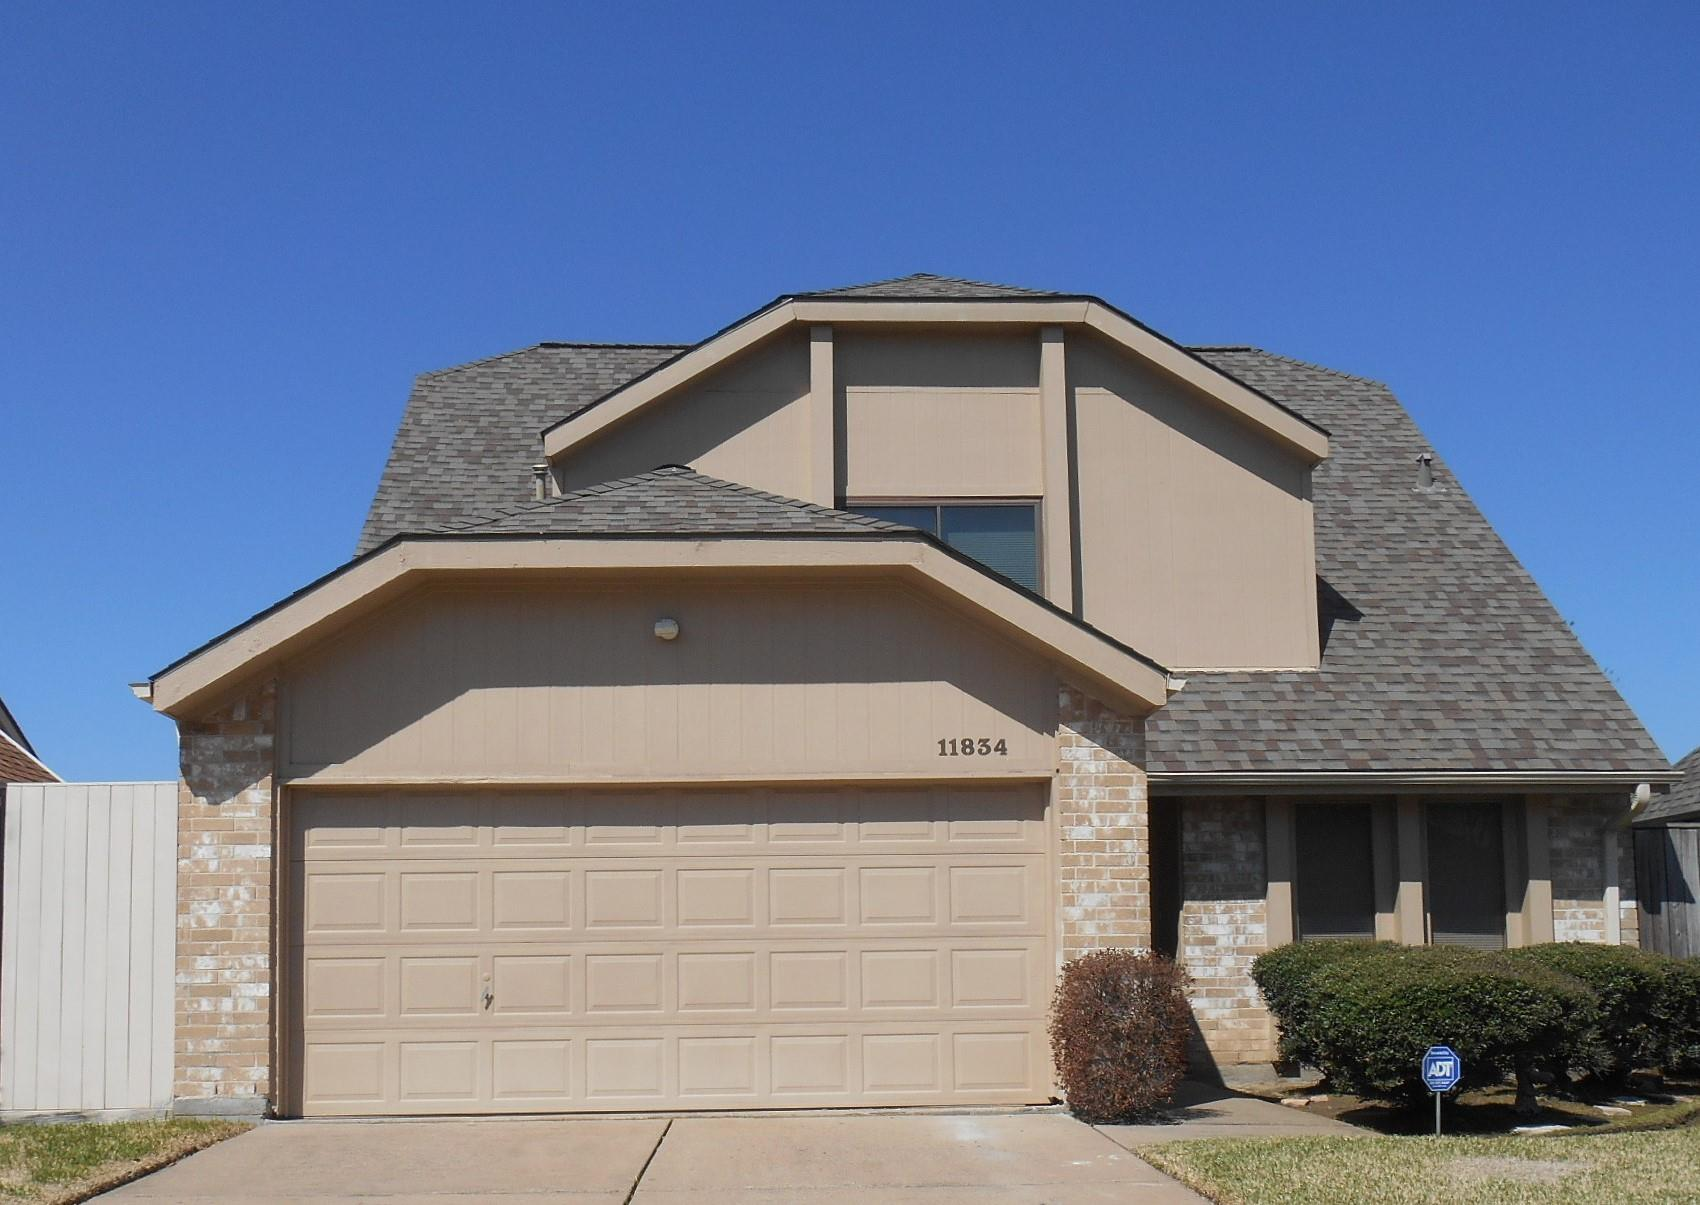 11834 Oak Meadow Property Photo - Meadows Place, TX real estate listing